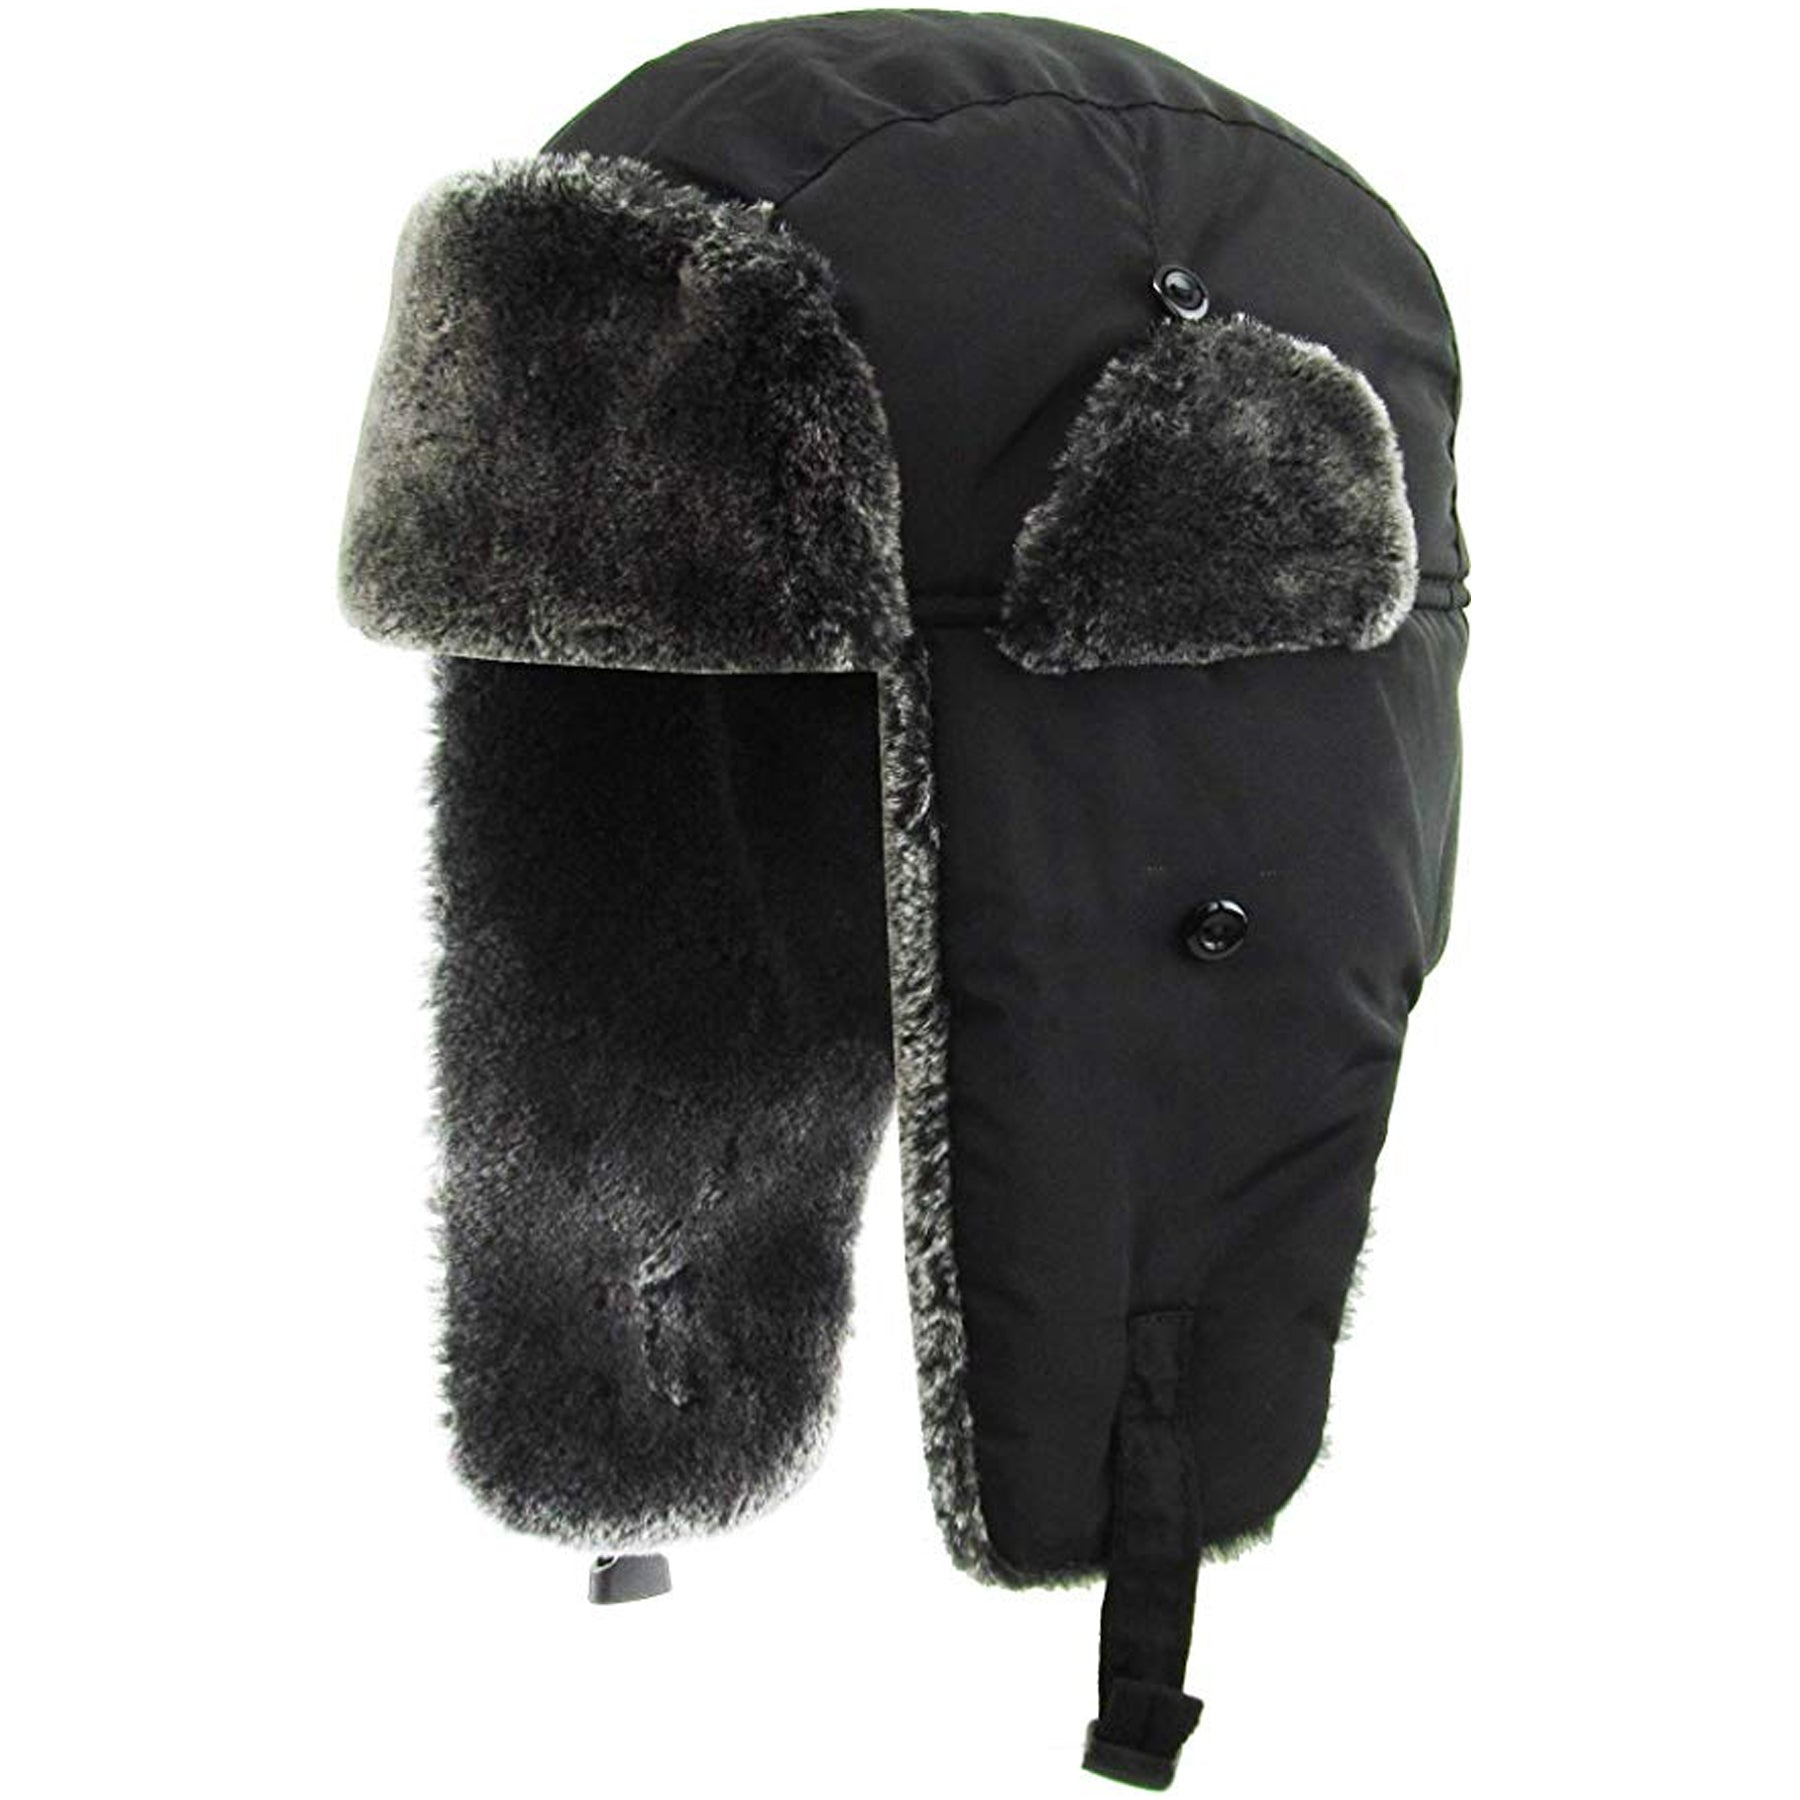 9aaeec6c8de the black premium vegan fur ushanka trapper hat is black with a dark gray  interior